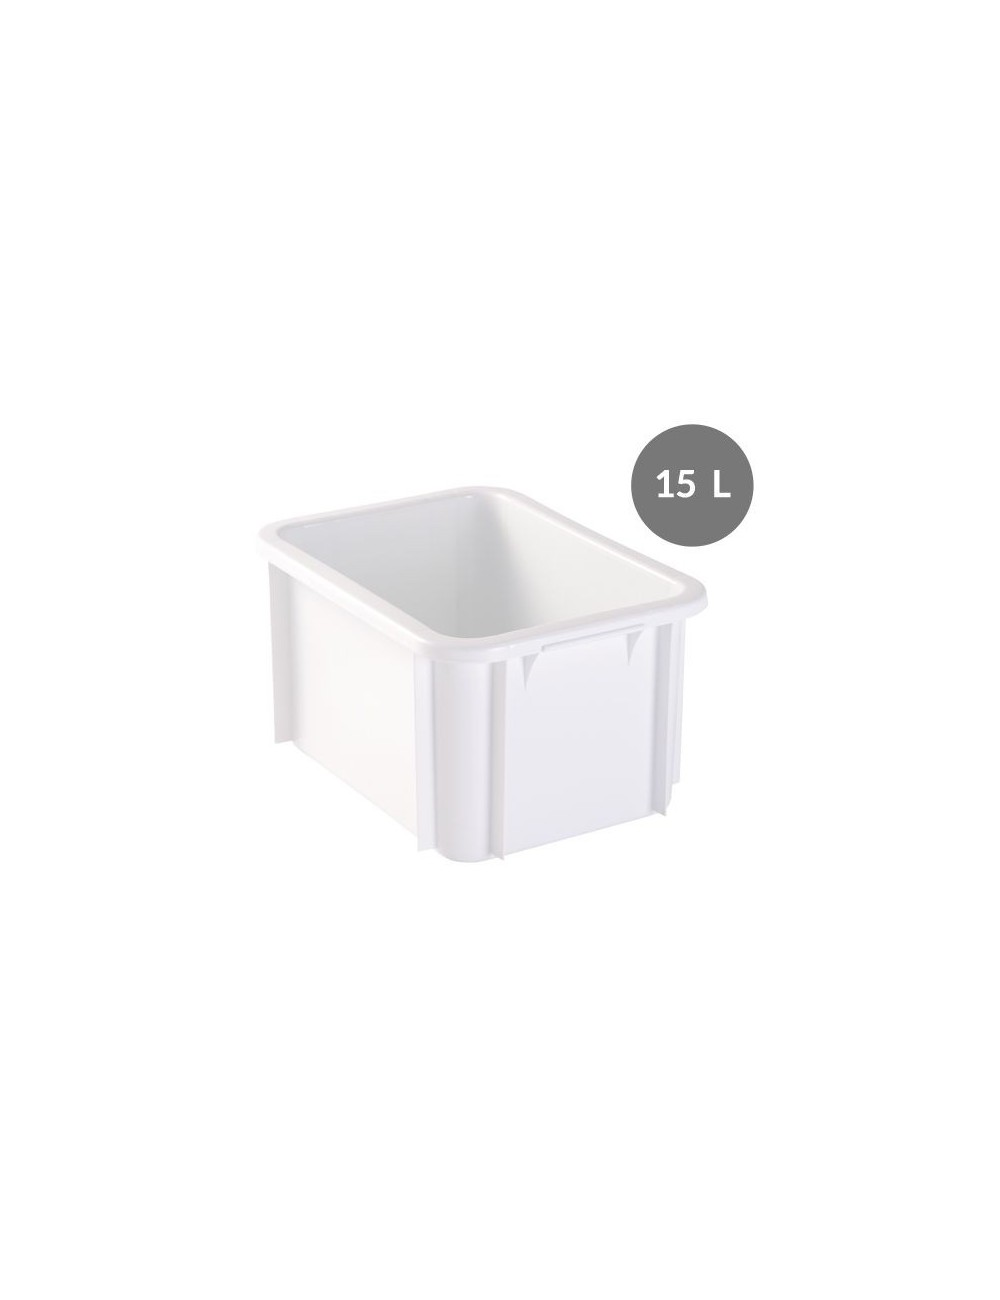 15 L RECTANGULAR CONTAINER